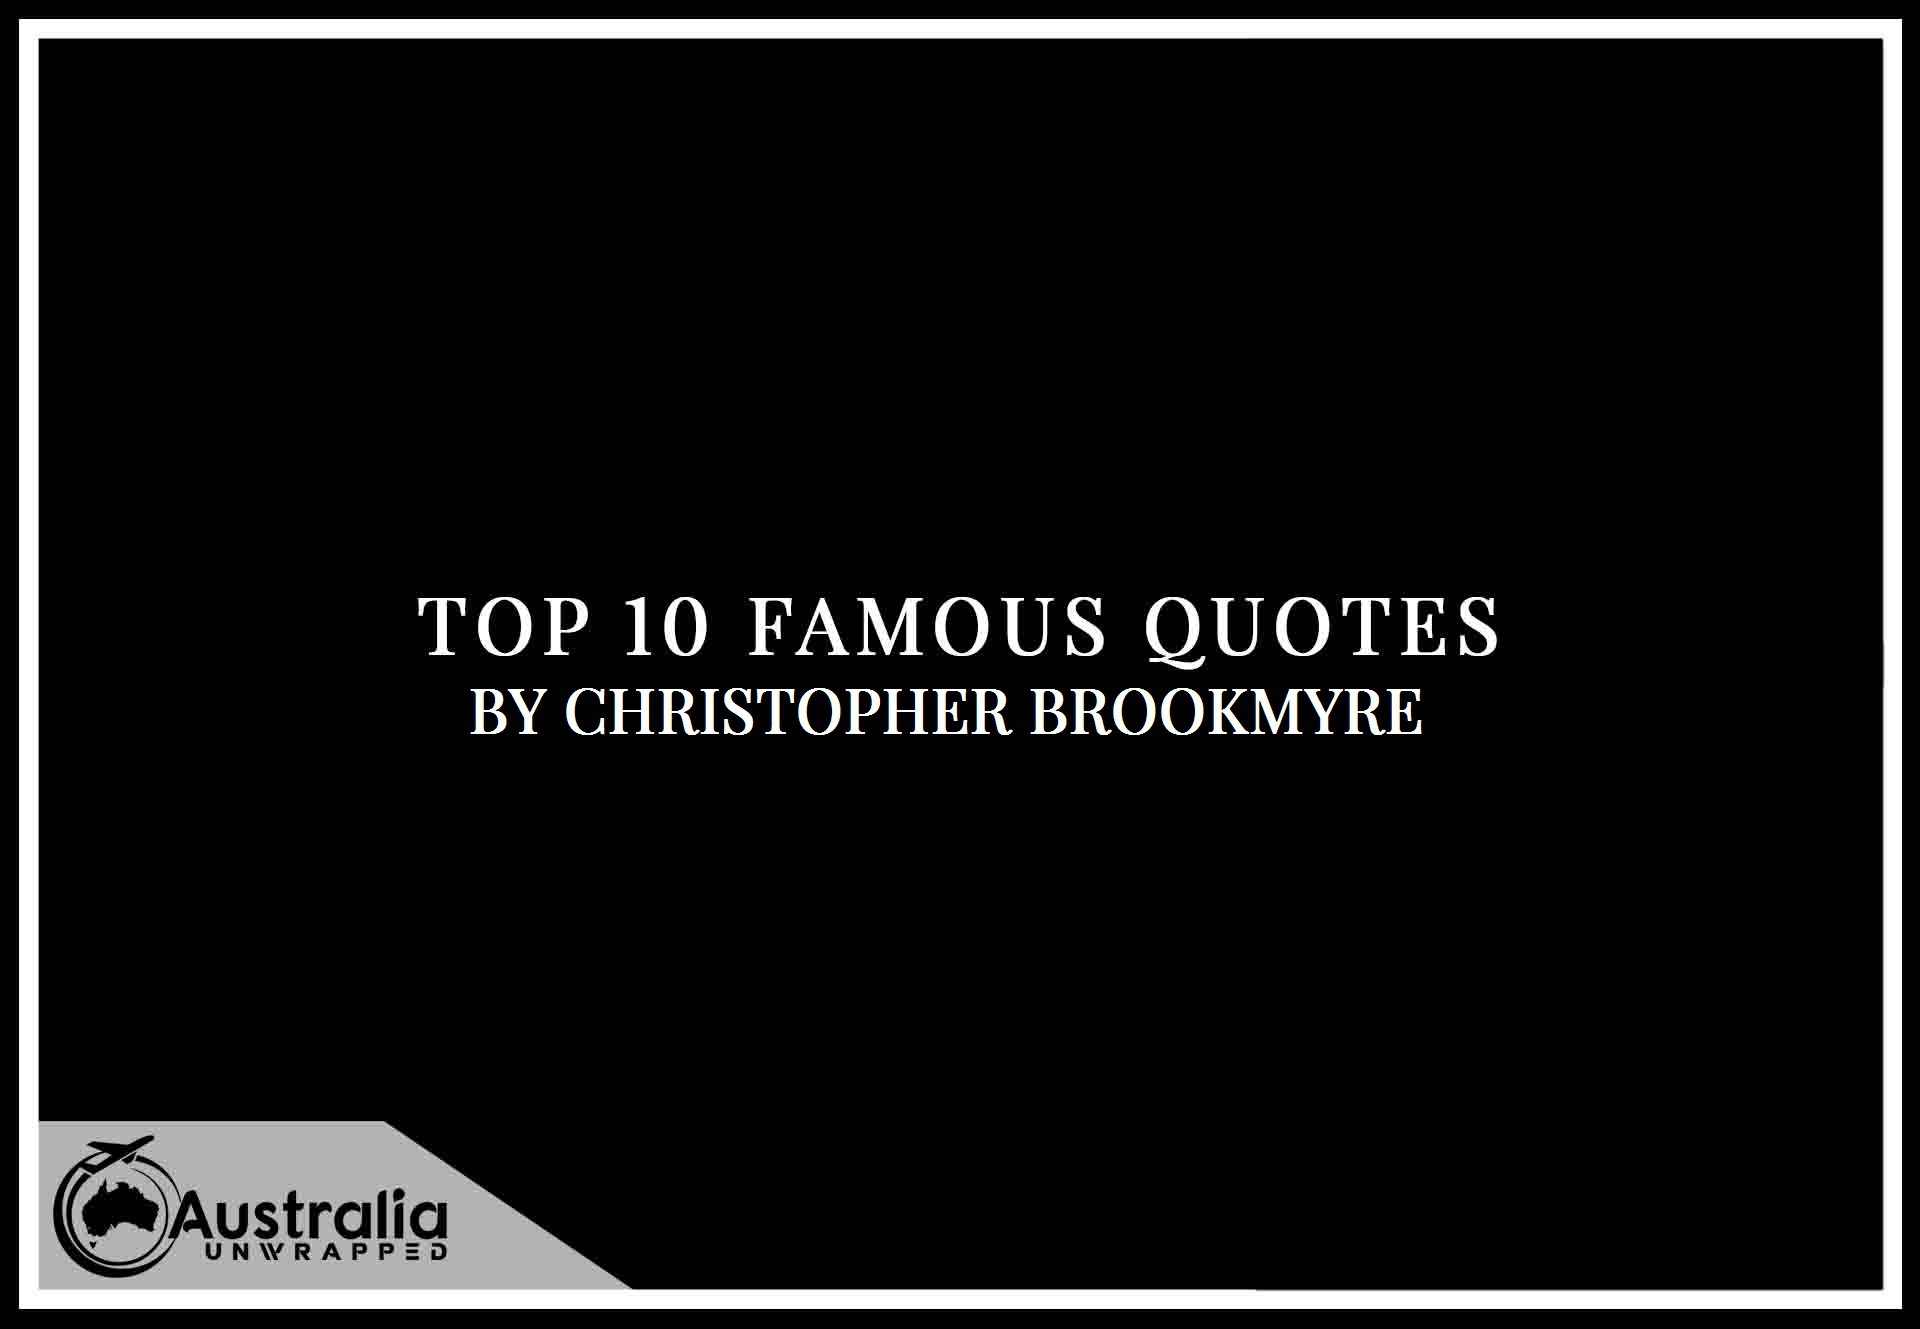 Christopher Brookmyre's Top 10 Popular and Famous Quotes